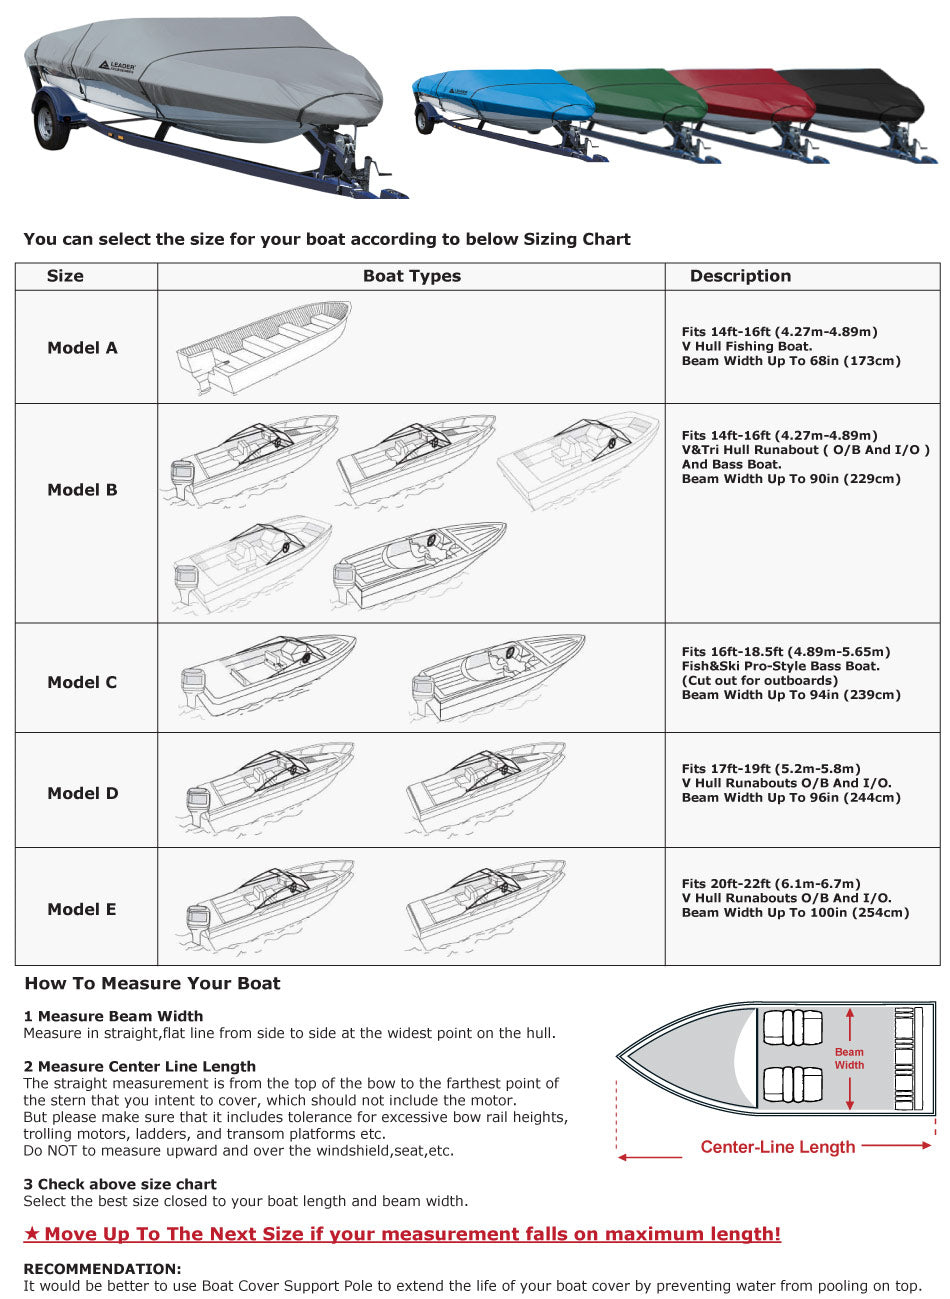 Leader Accessories Boat Covers size chart